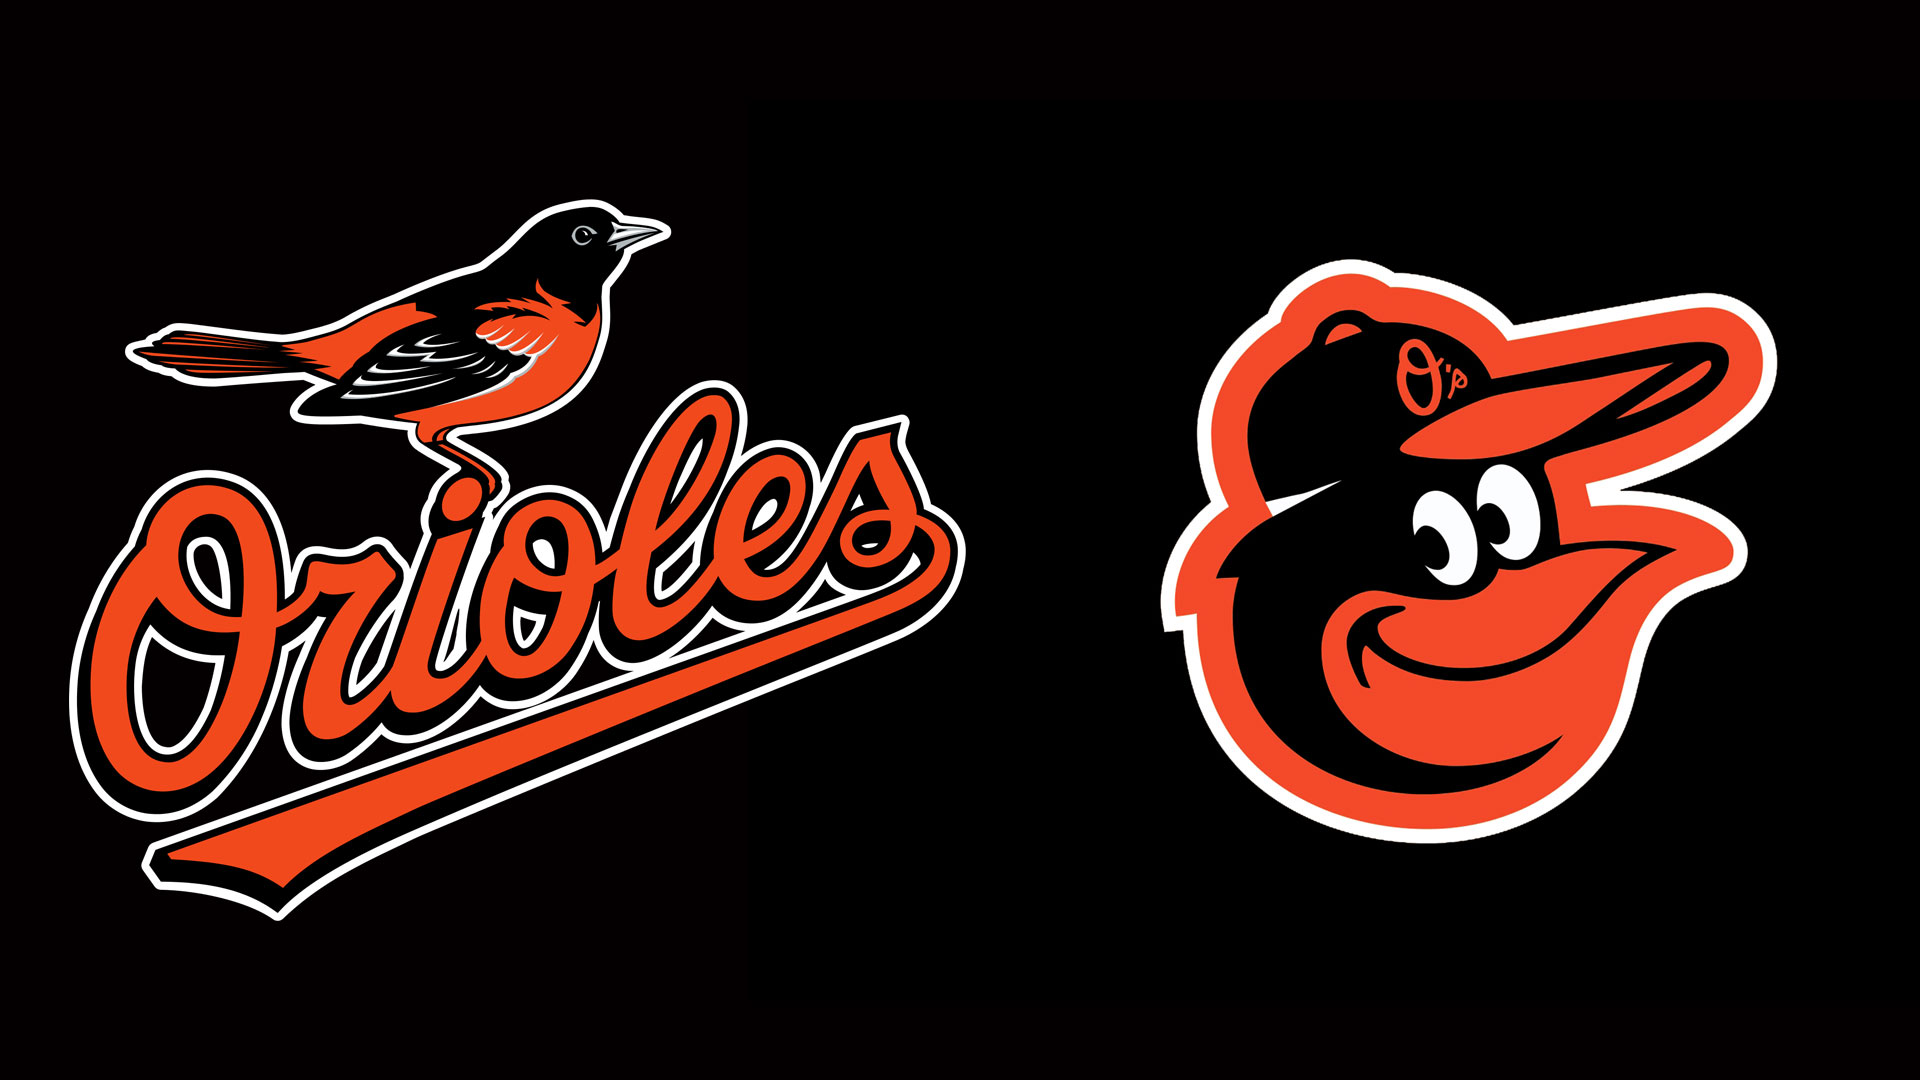 MLB Logo Team Baltimore Orioles wallpaper 2018 in Baseball 1920x1080